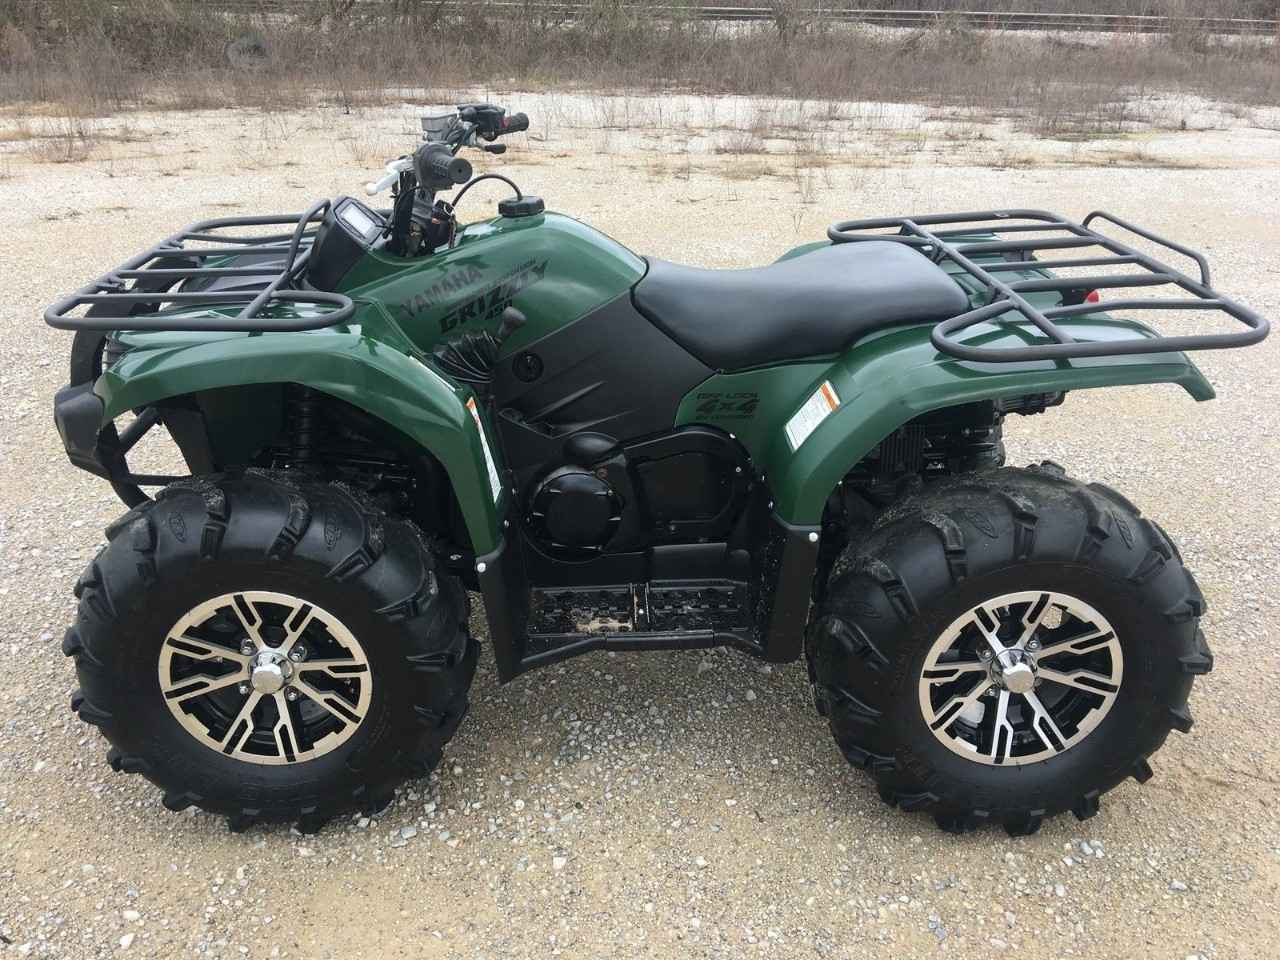 Used 2010 yamaha grizzly 450 auto 4x4 atvs for sale in new for Yamaha atv for sale used